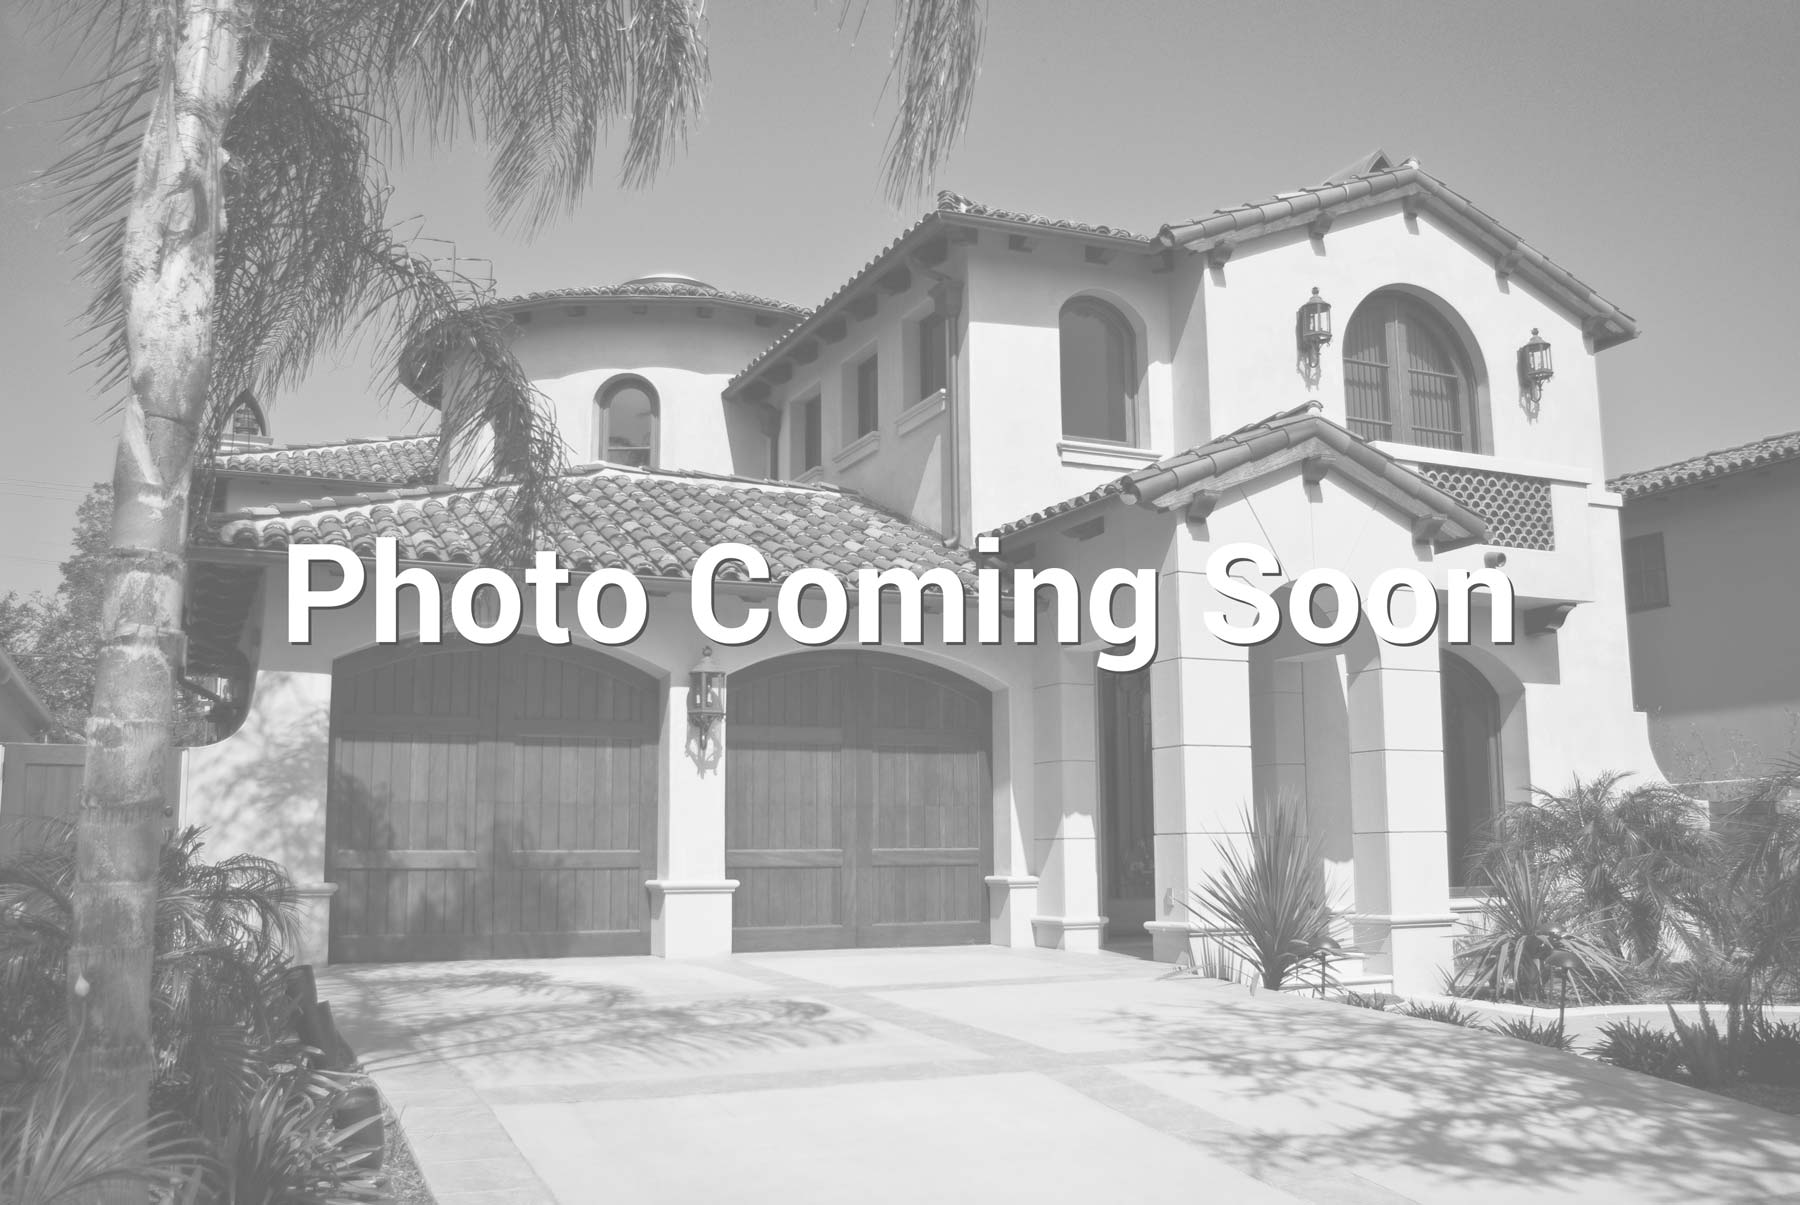 $735,000 - 3Br/2Ba -  for Sale in Terra Linda (terl), Yorba Linda